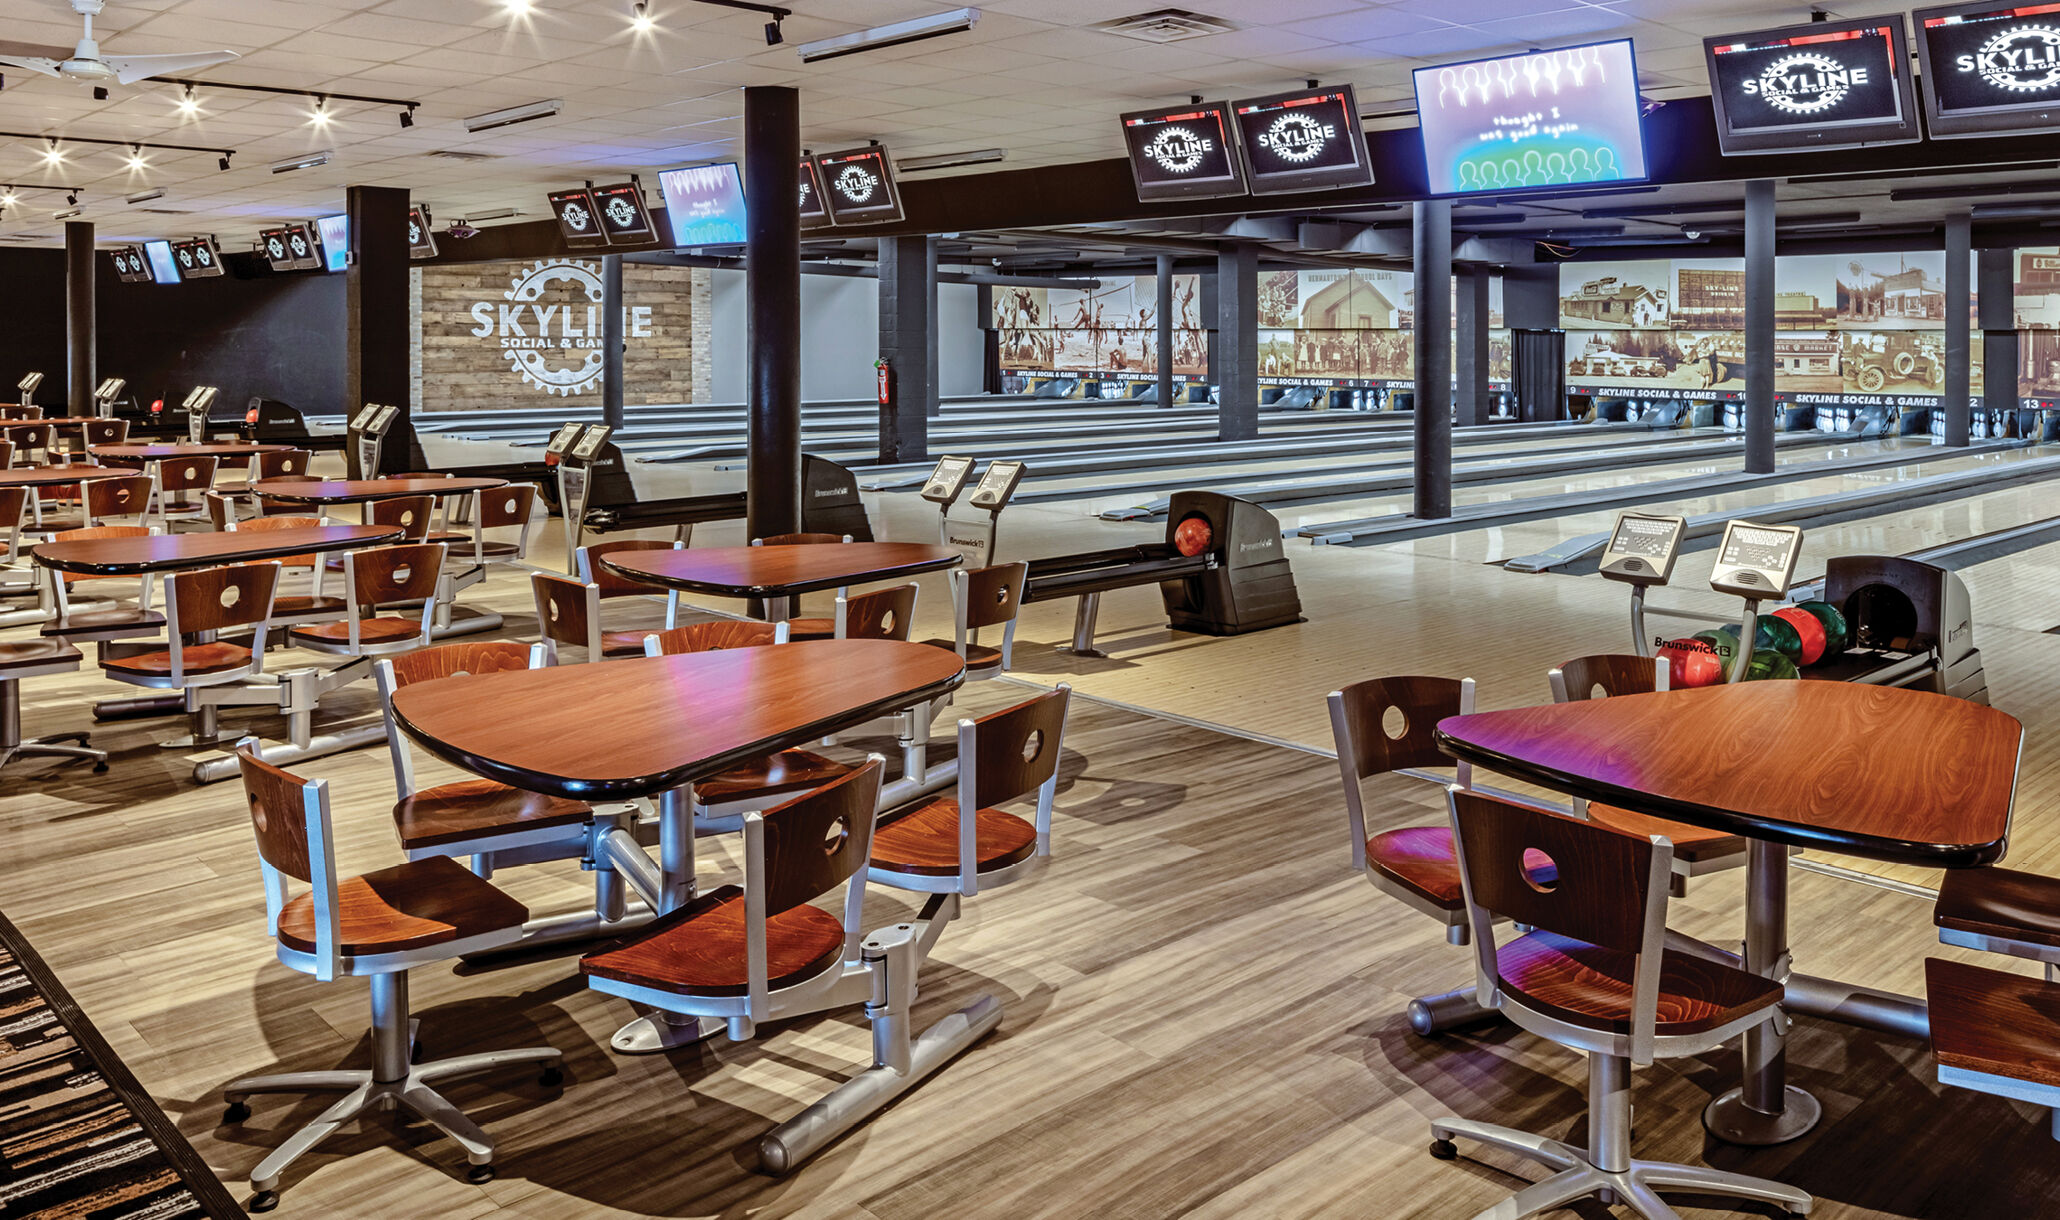 Skyline Social, Hermantown, MN - Bowlers area and lanes-2